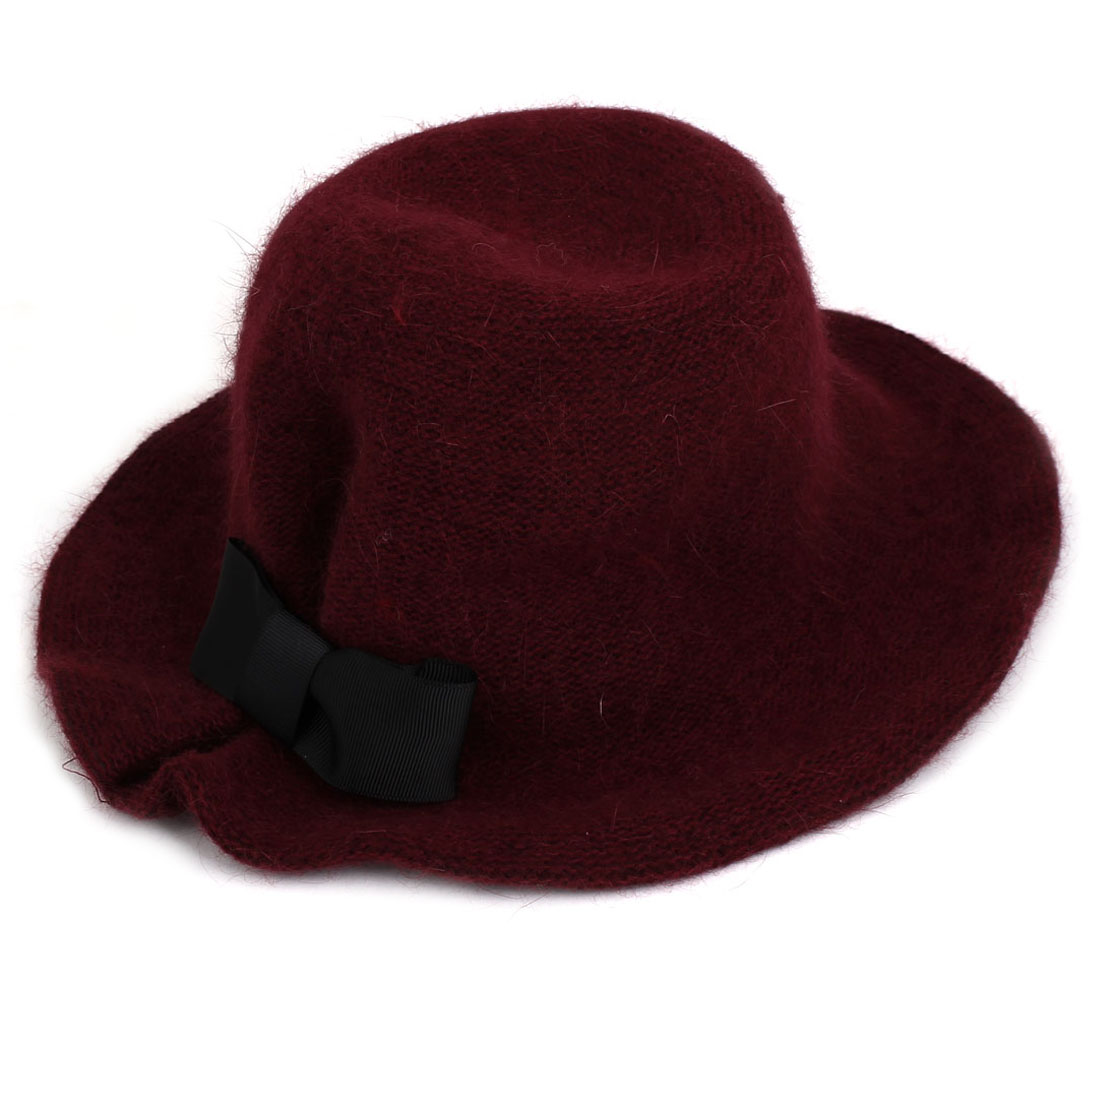 Lady Faux Fur Bowknot Decor Party Warm Bowler Cloche Bucket Hat Cap Burgundy